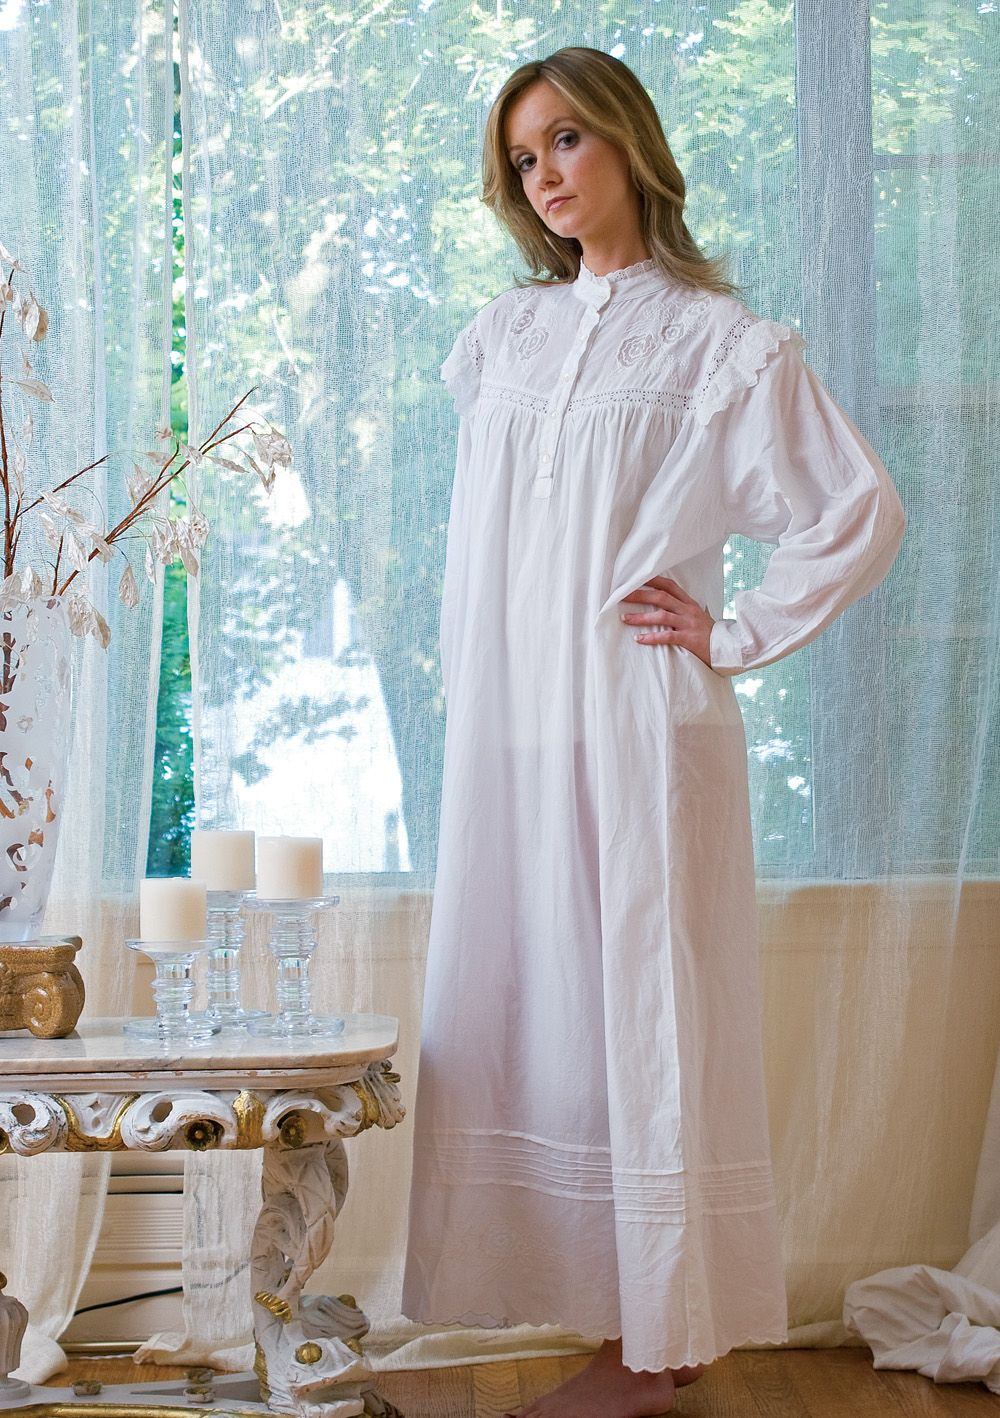 c57eefe581 Victorian nightgown. Victorian nightgown Cotton Nighties